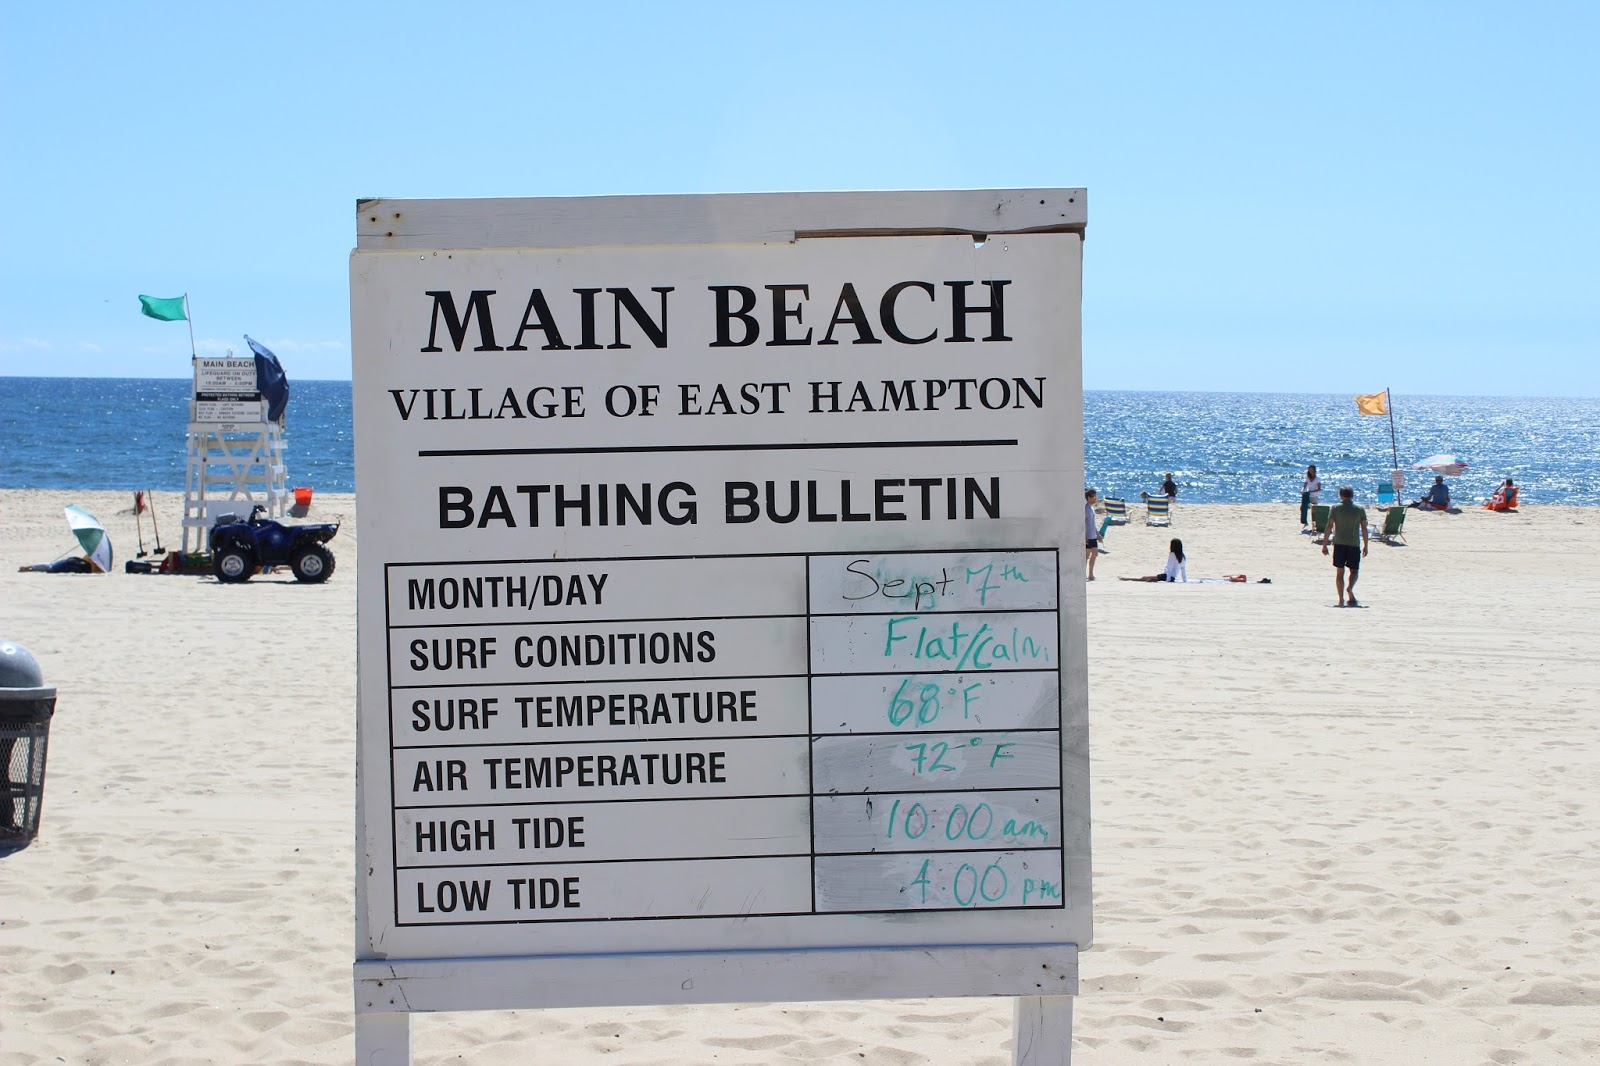 The Main Beach In East Hampton Is An Award Winner I Confess Had Never Visited It Until This Past Weekend